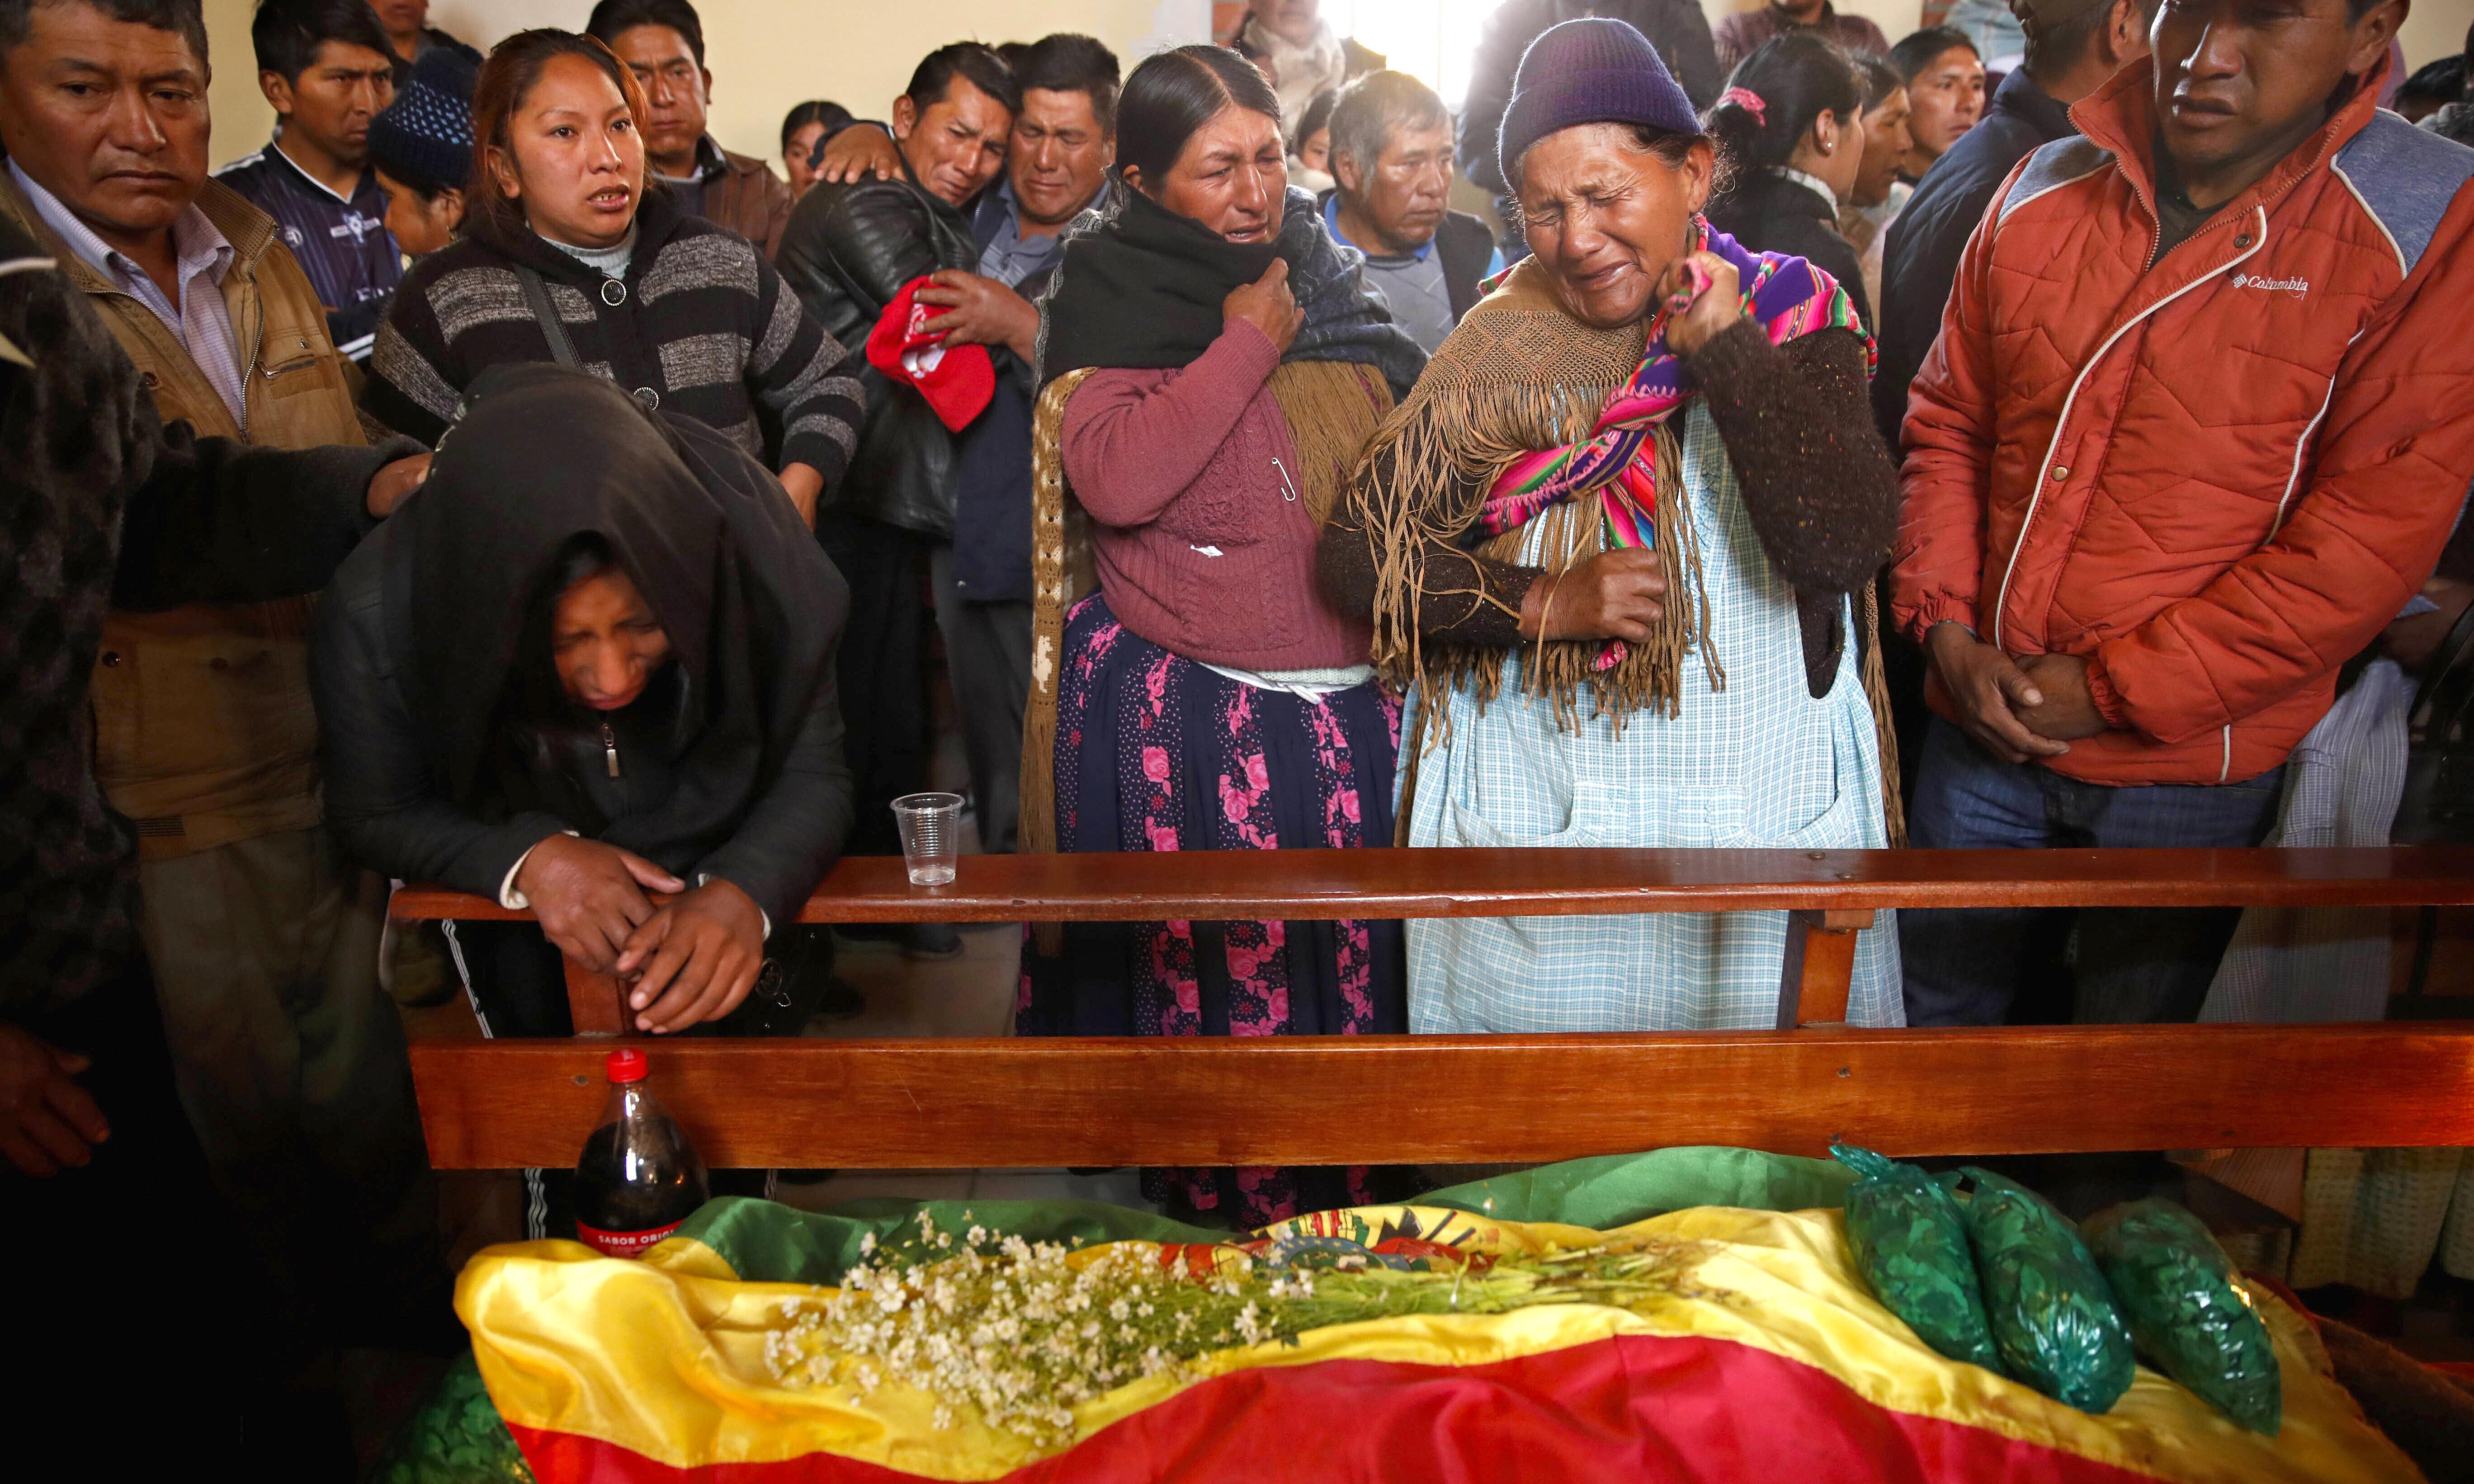 'What happened was a massacre': grief and rage in Bolivia after day of deadly violence